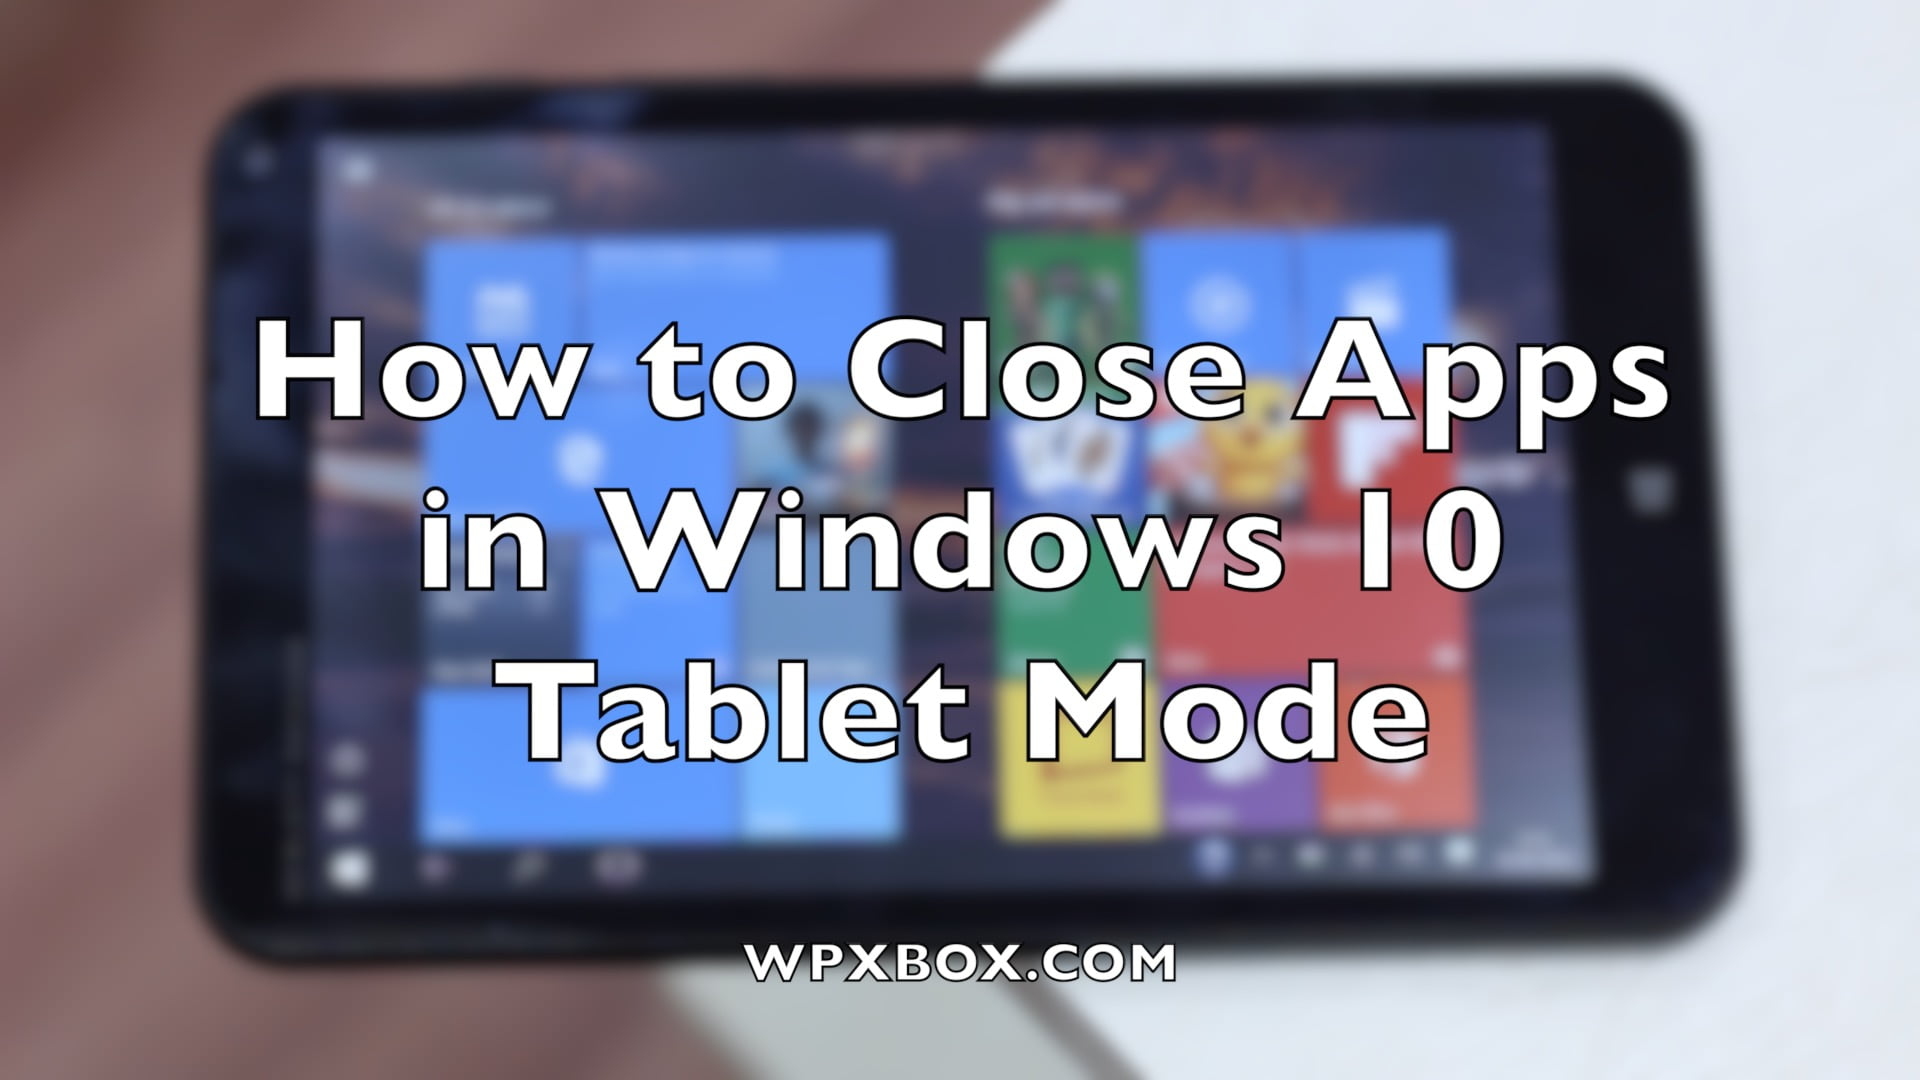 How to Close Apps in Windows 10 Tablet Mode